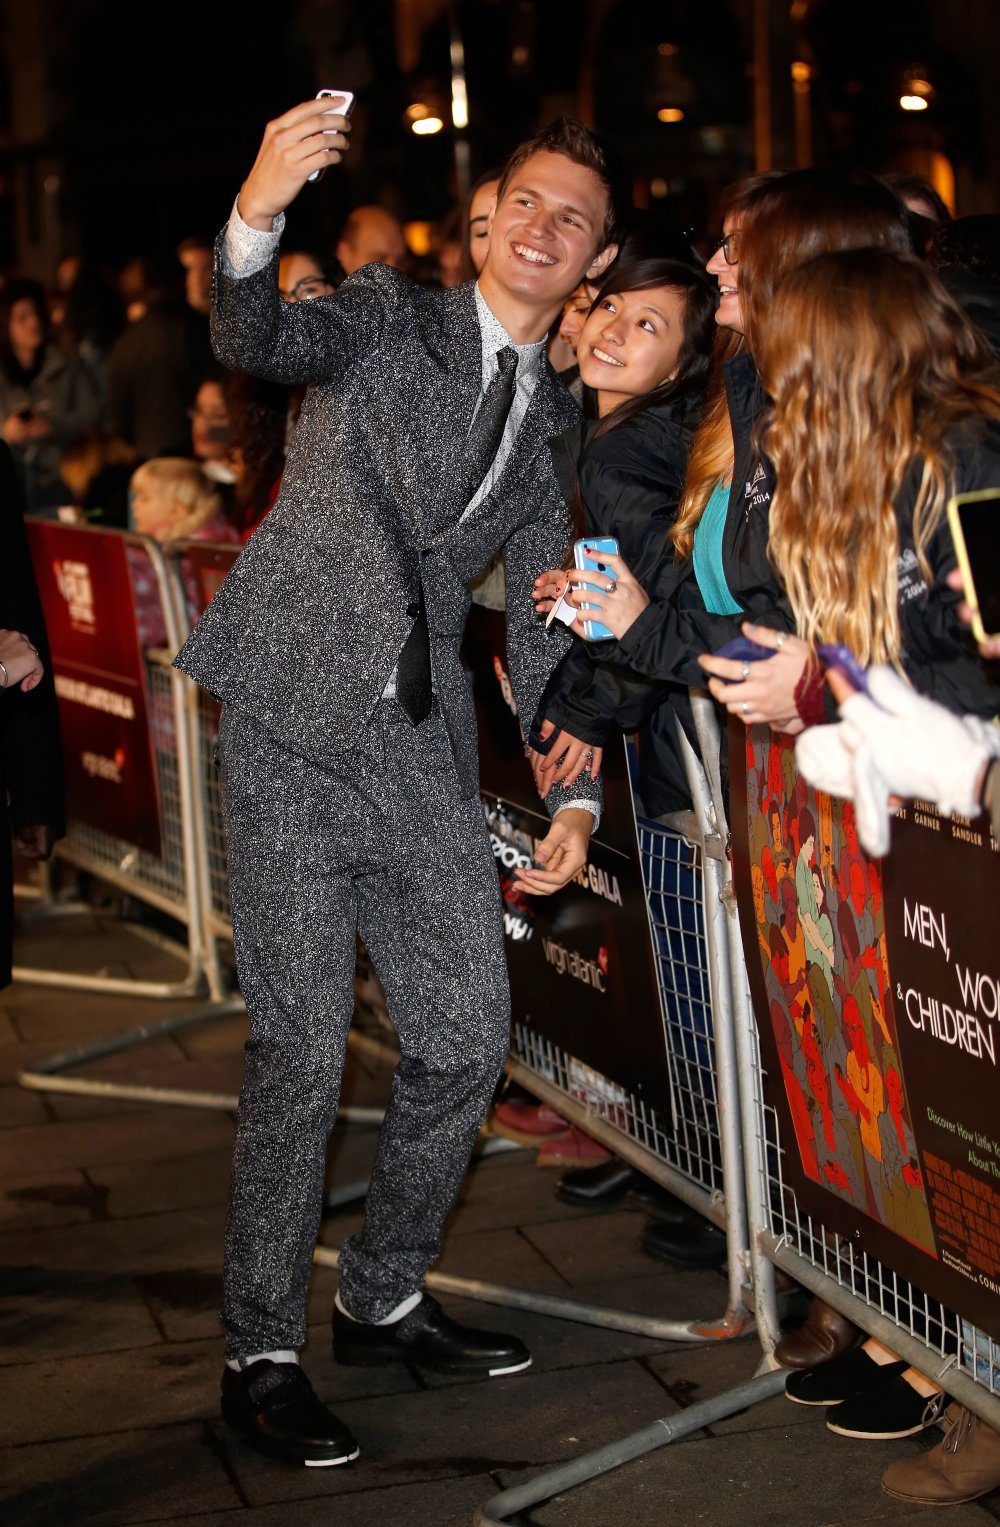 Angel Elgort on the red carpet for Men, Women & Children at the 58th BFI London Film Festival